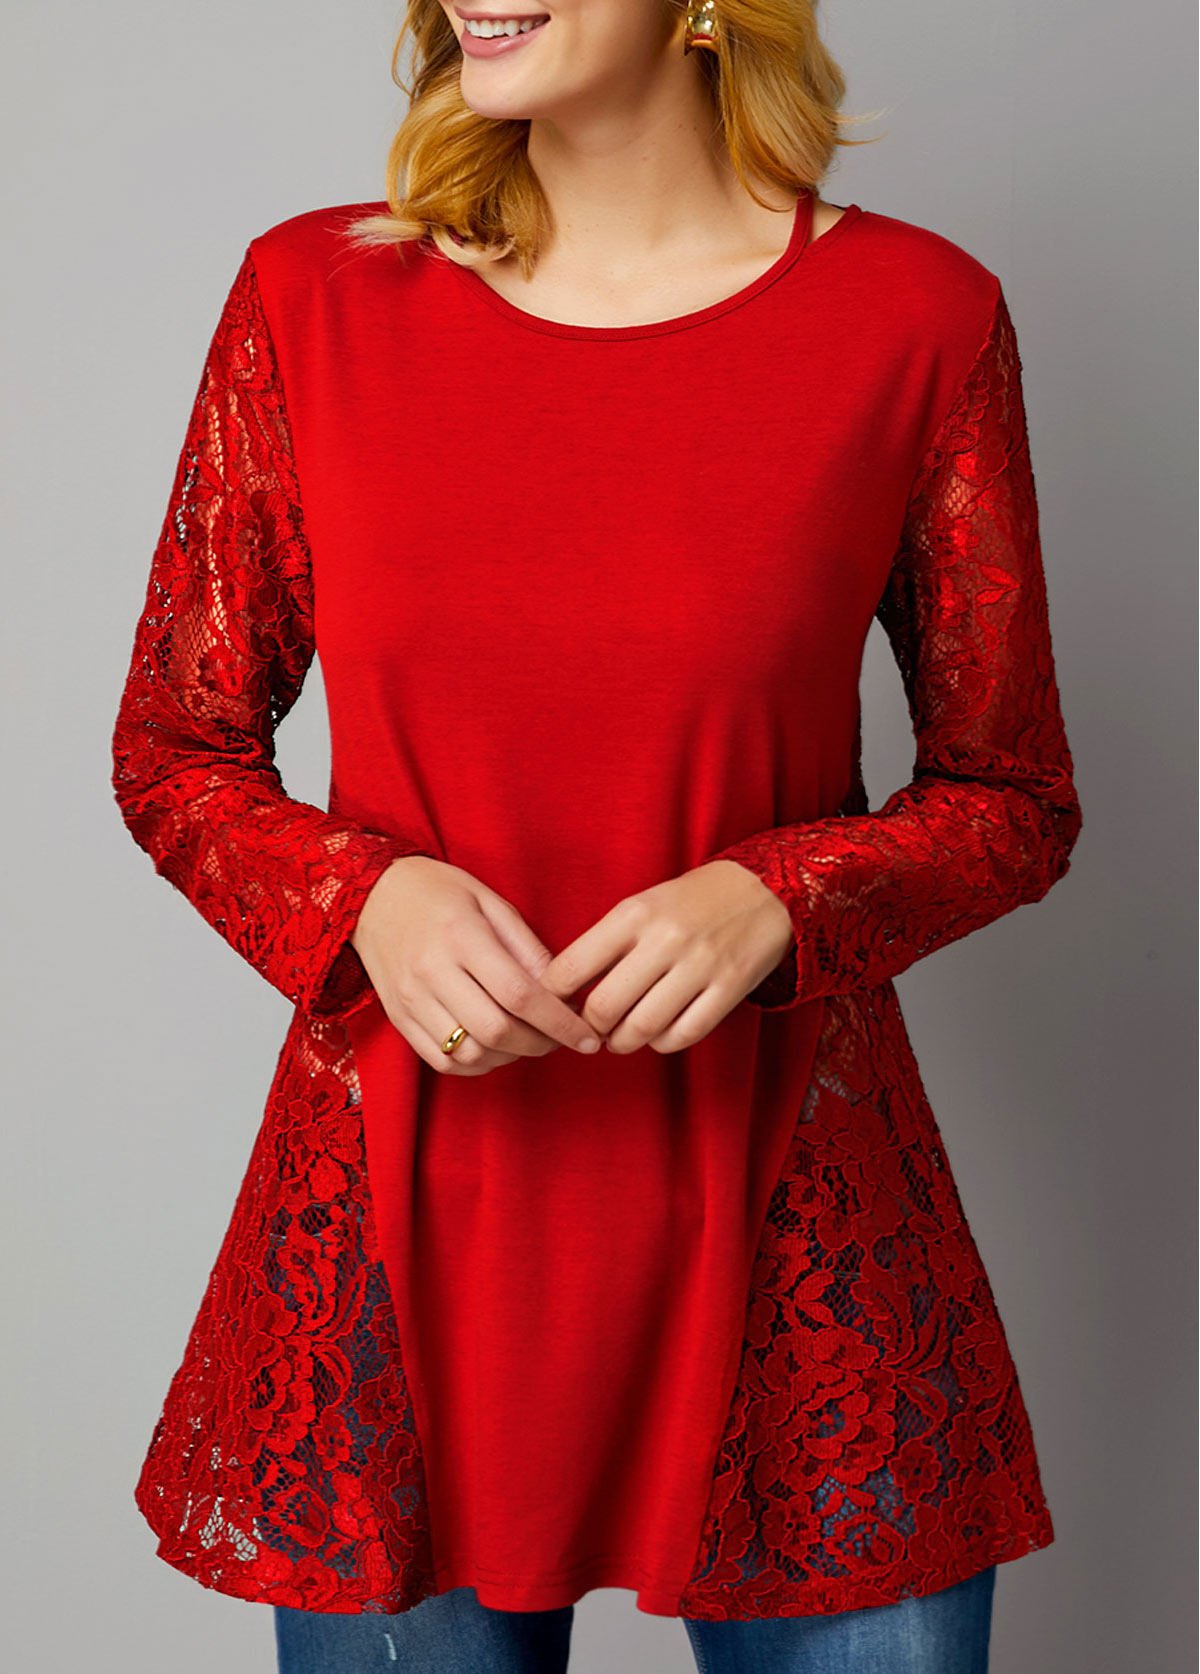 Long Sleeve Lace Panel Wine Red T Shirt